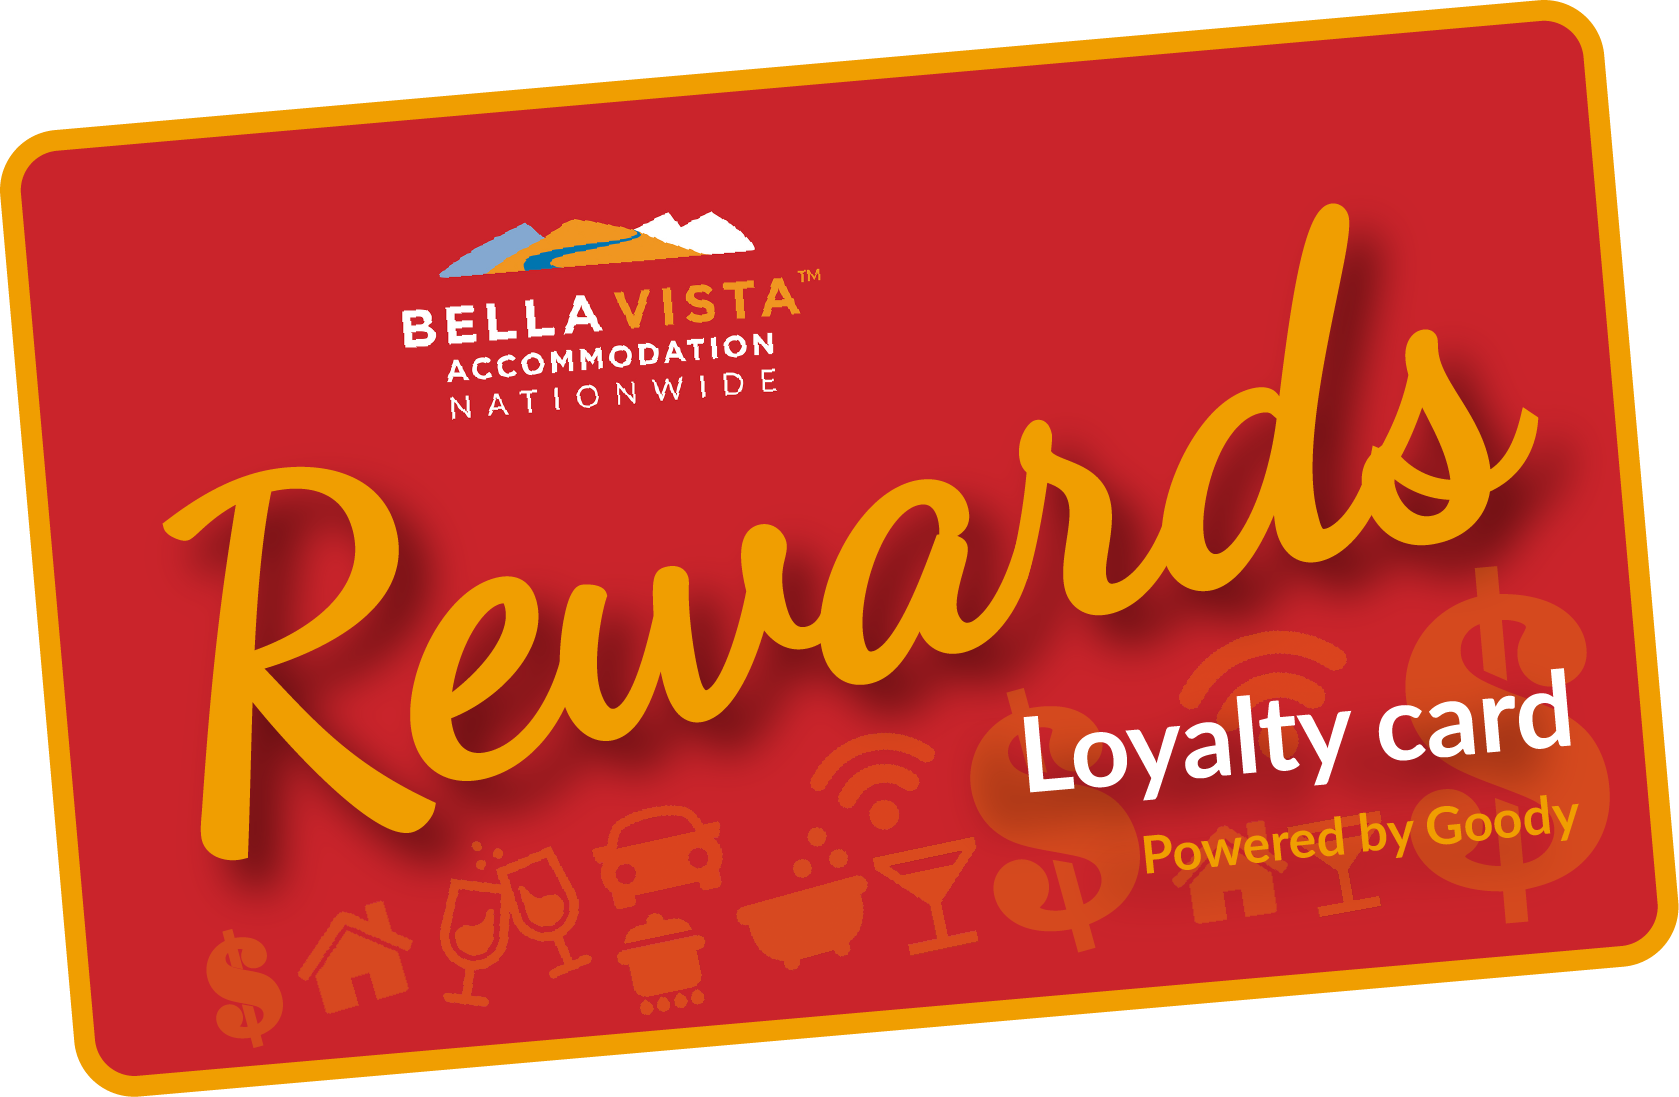 Bella Vista Rewards Loyalty Card